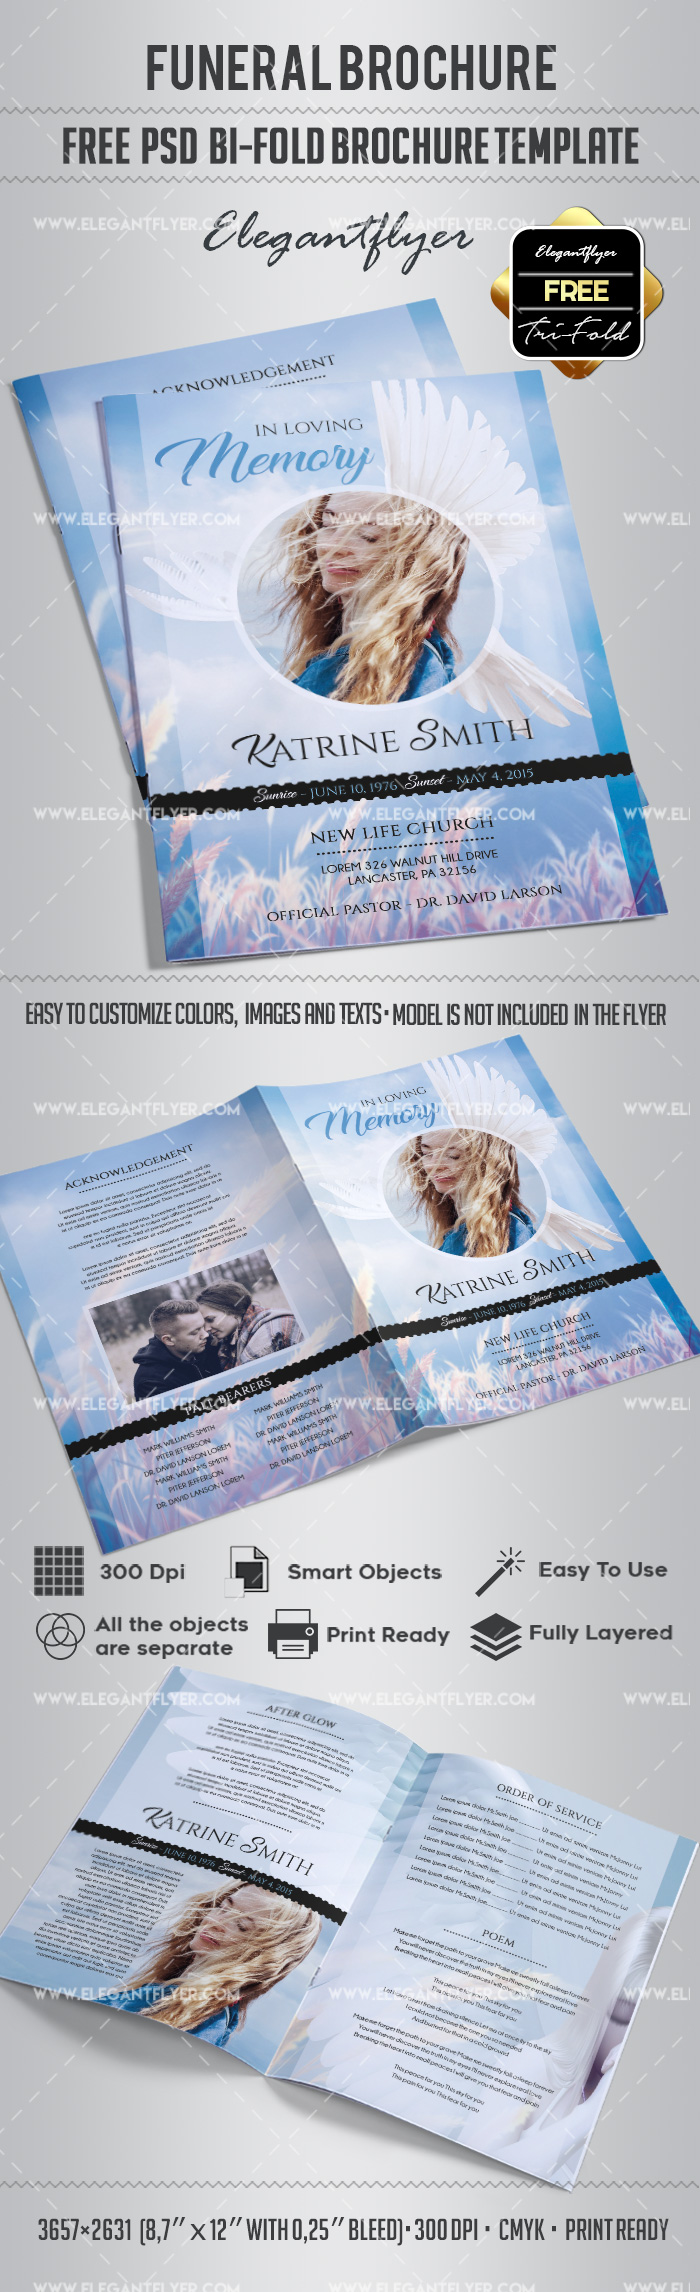 Free funeral bi fold brochure by elegantflyer for Free psd brochure template